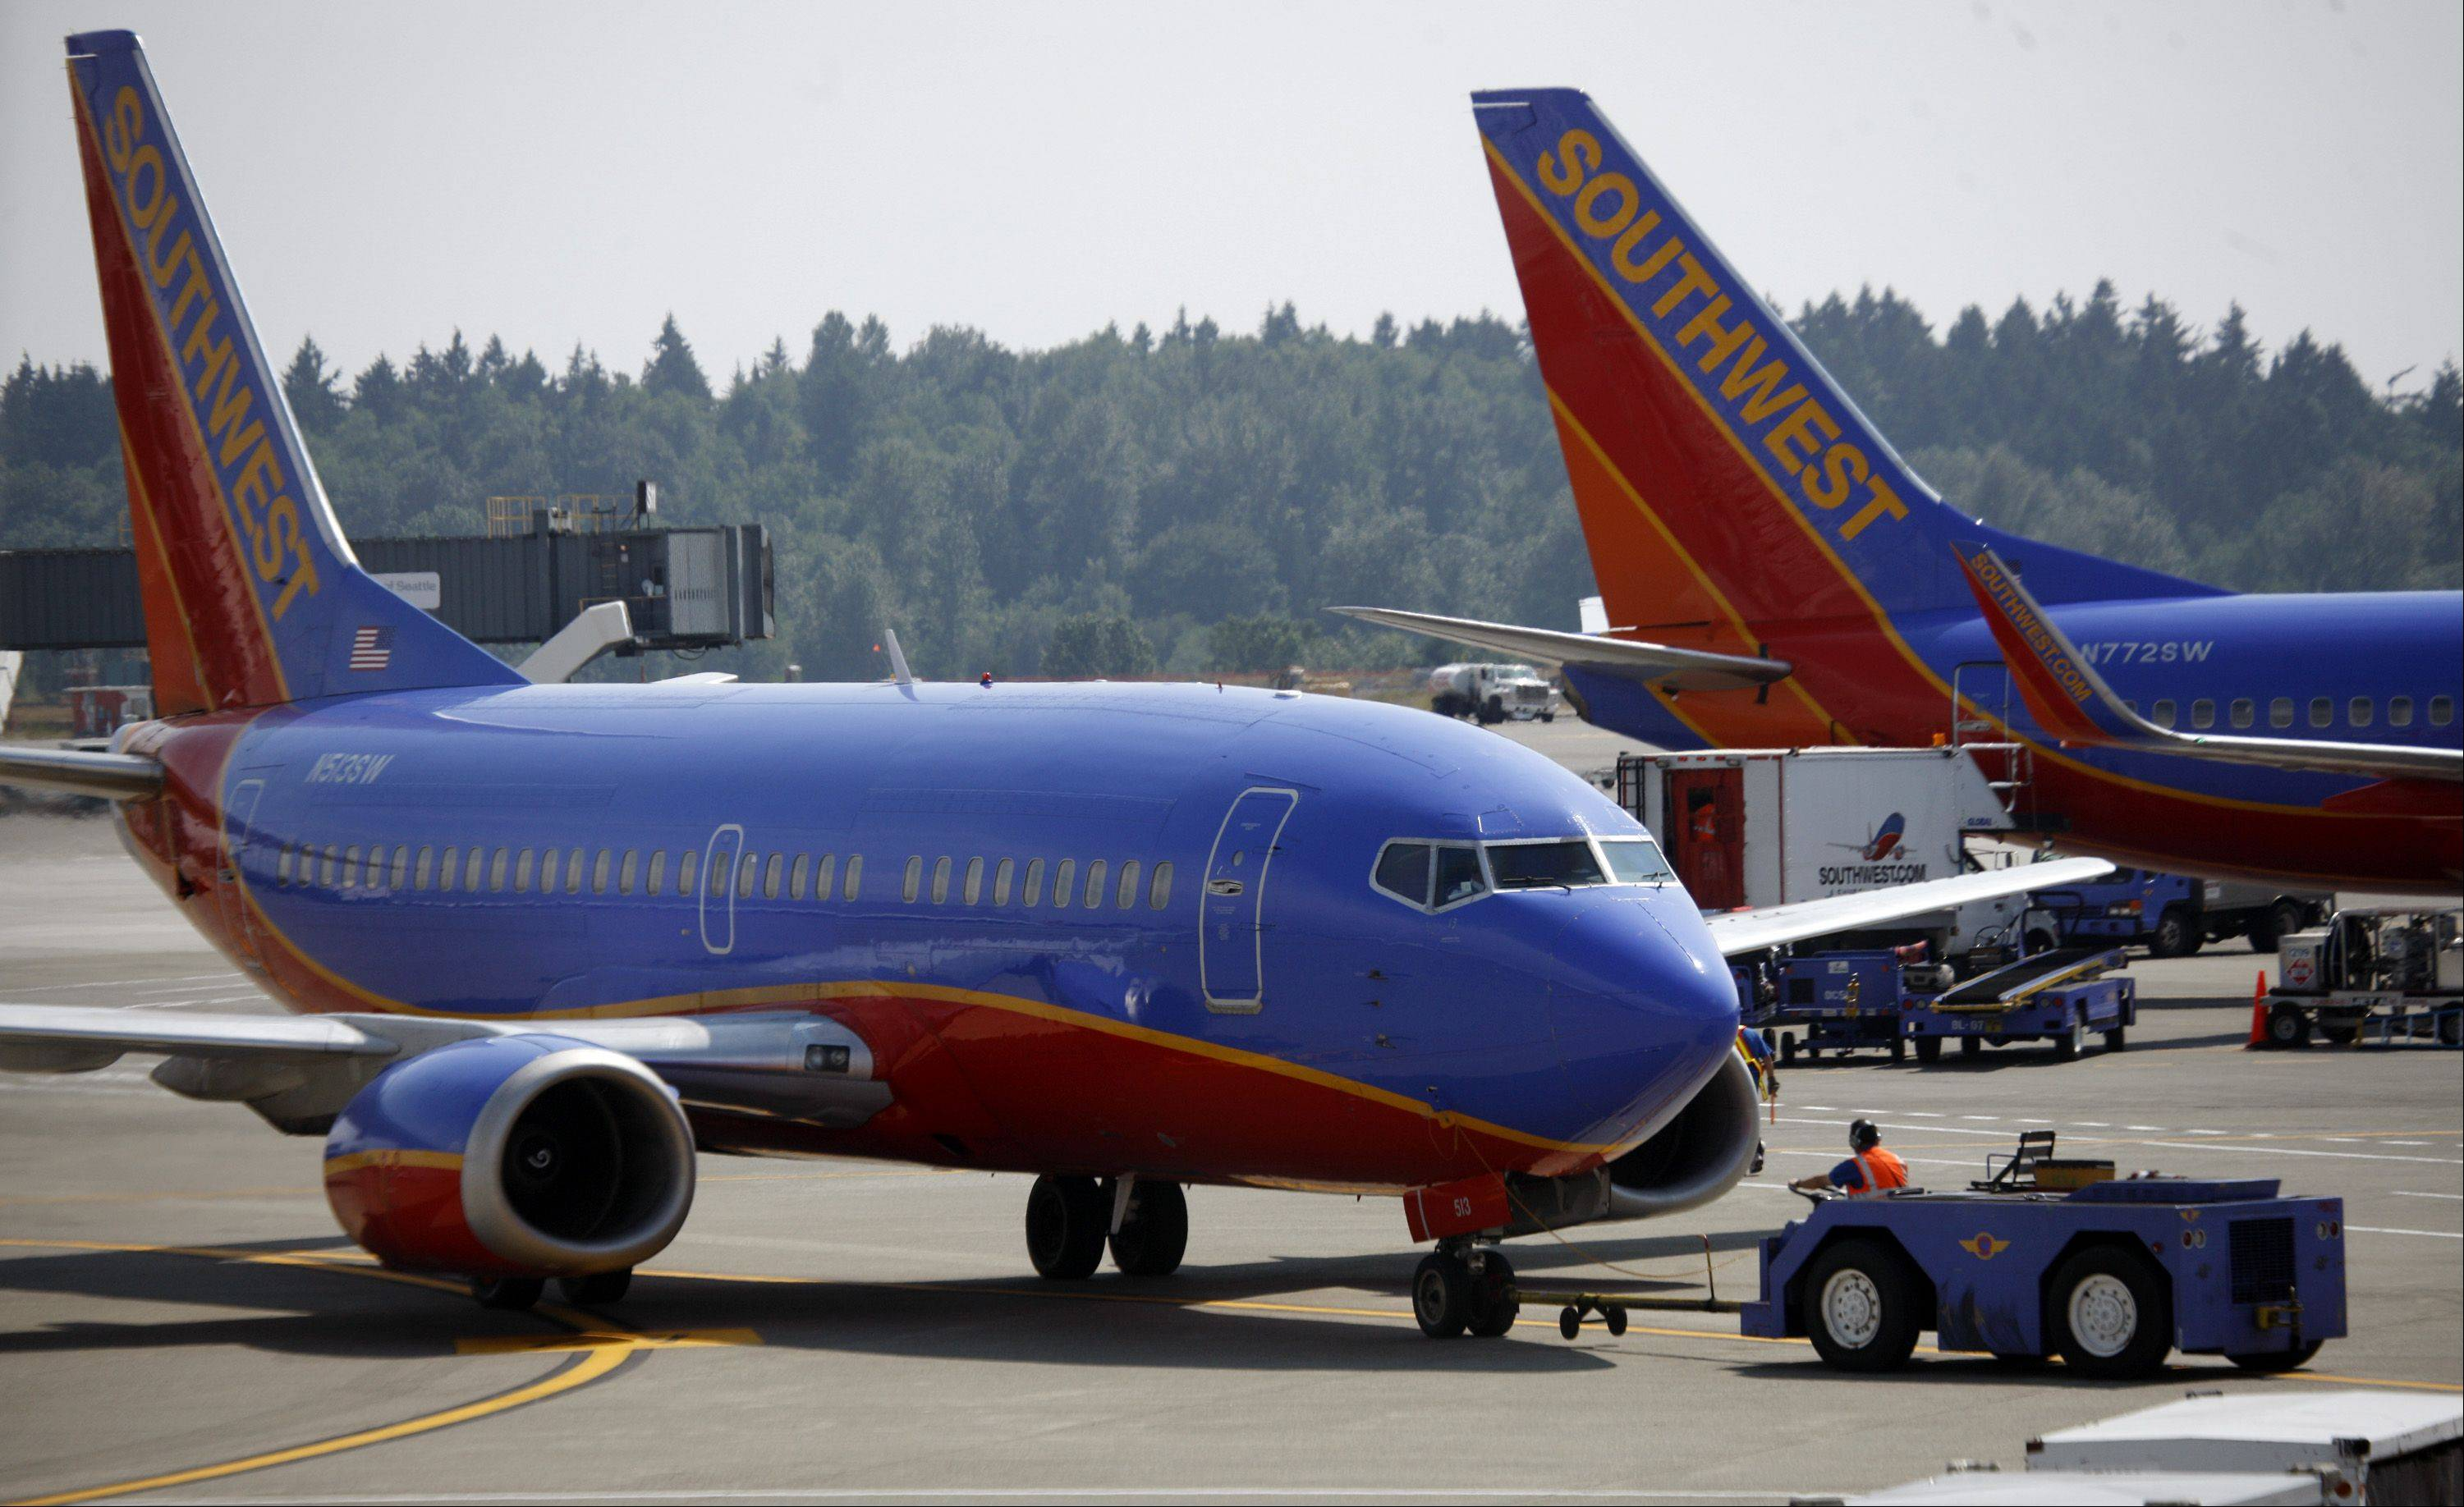 Southwest Airlines eked out a small third-quarter profit in spite of a September slowdown, the company said on Thursday. The airline has been using a mix of fare increases and sales to try to get its prices to a level that travelers will pay. Last month, fares paid by business travelers were soft, CEO Gary Kelly said on CNBC.